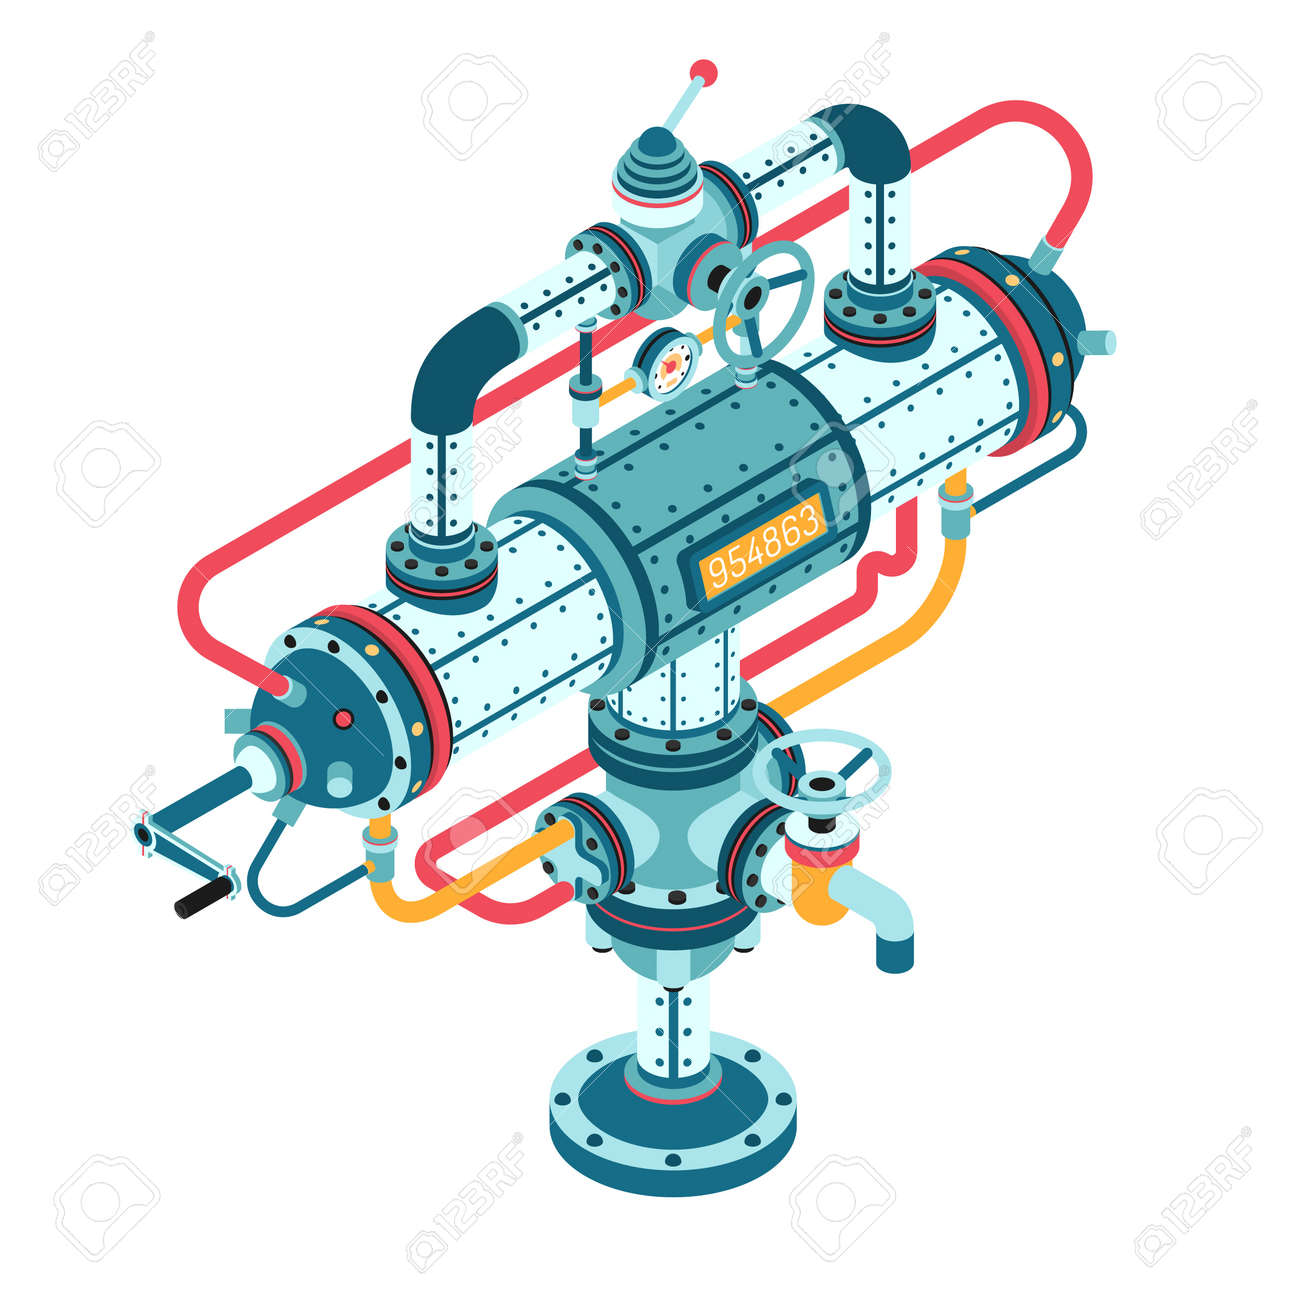 Fantastic steampunk machine made of pipes, casings, cables, flanges, fittings, valves, cranes, wires and so on. 3d isometric vector illustration. Can be disassembled into separate parts. Stock Vector - 92805170